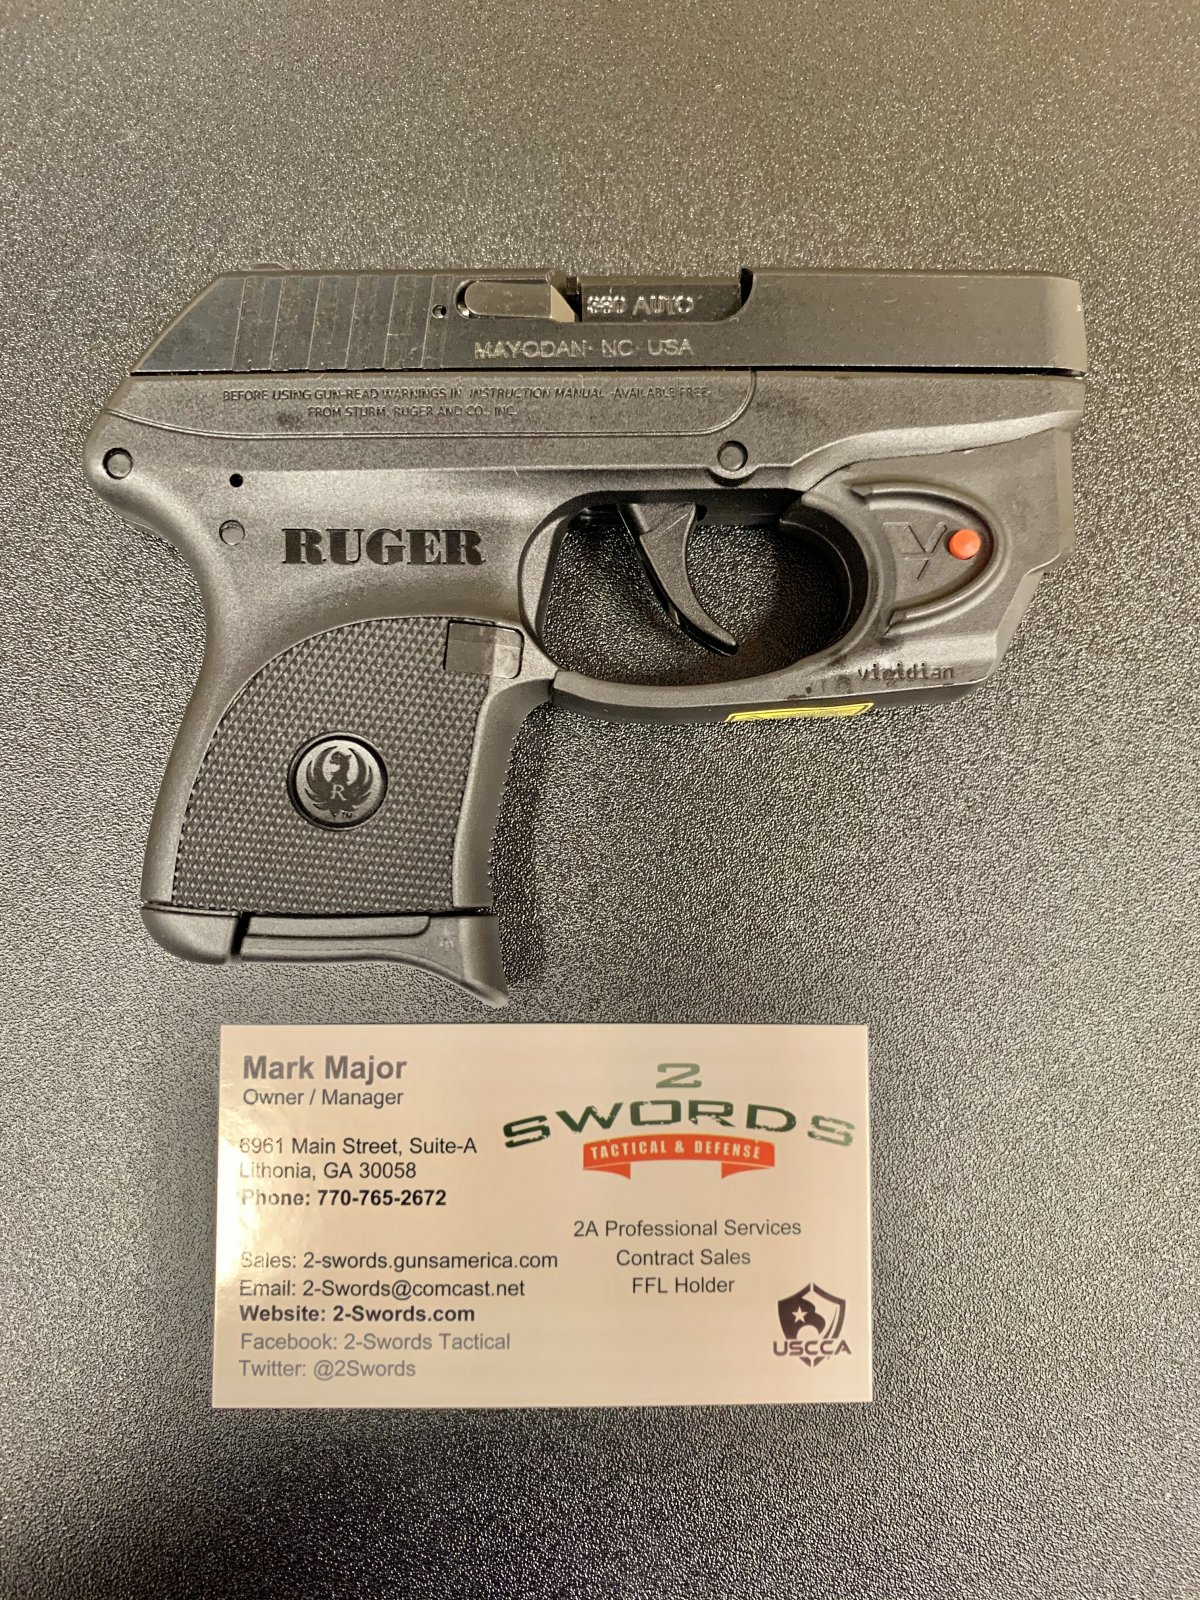 Ruger LCP 380 w/ Laser